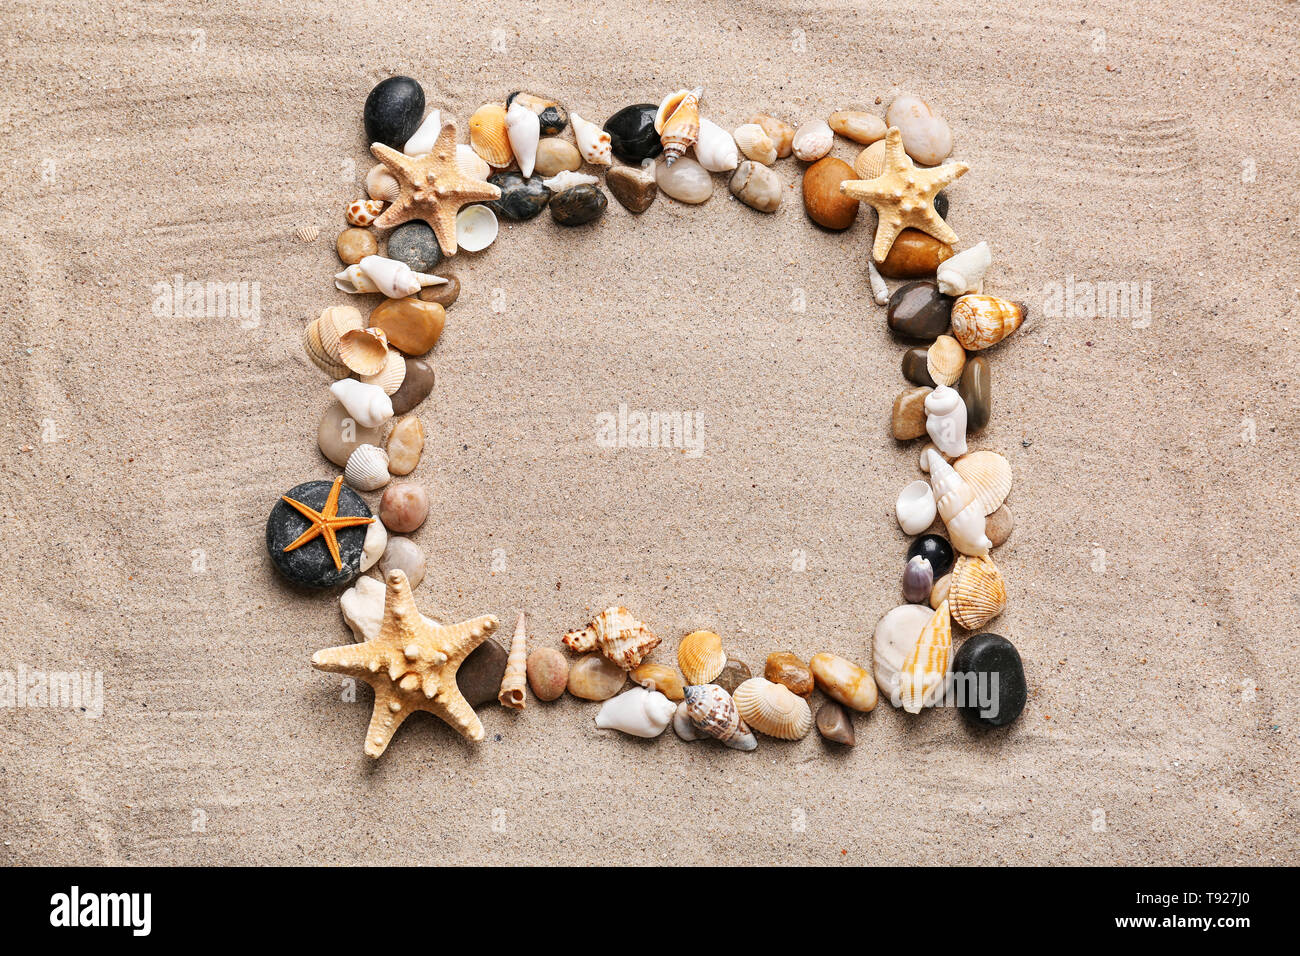 Frame made of different sea shells and starfishes with stones on sand - Stock Image